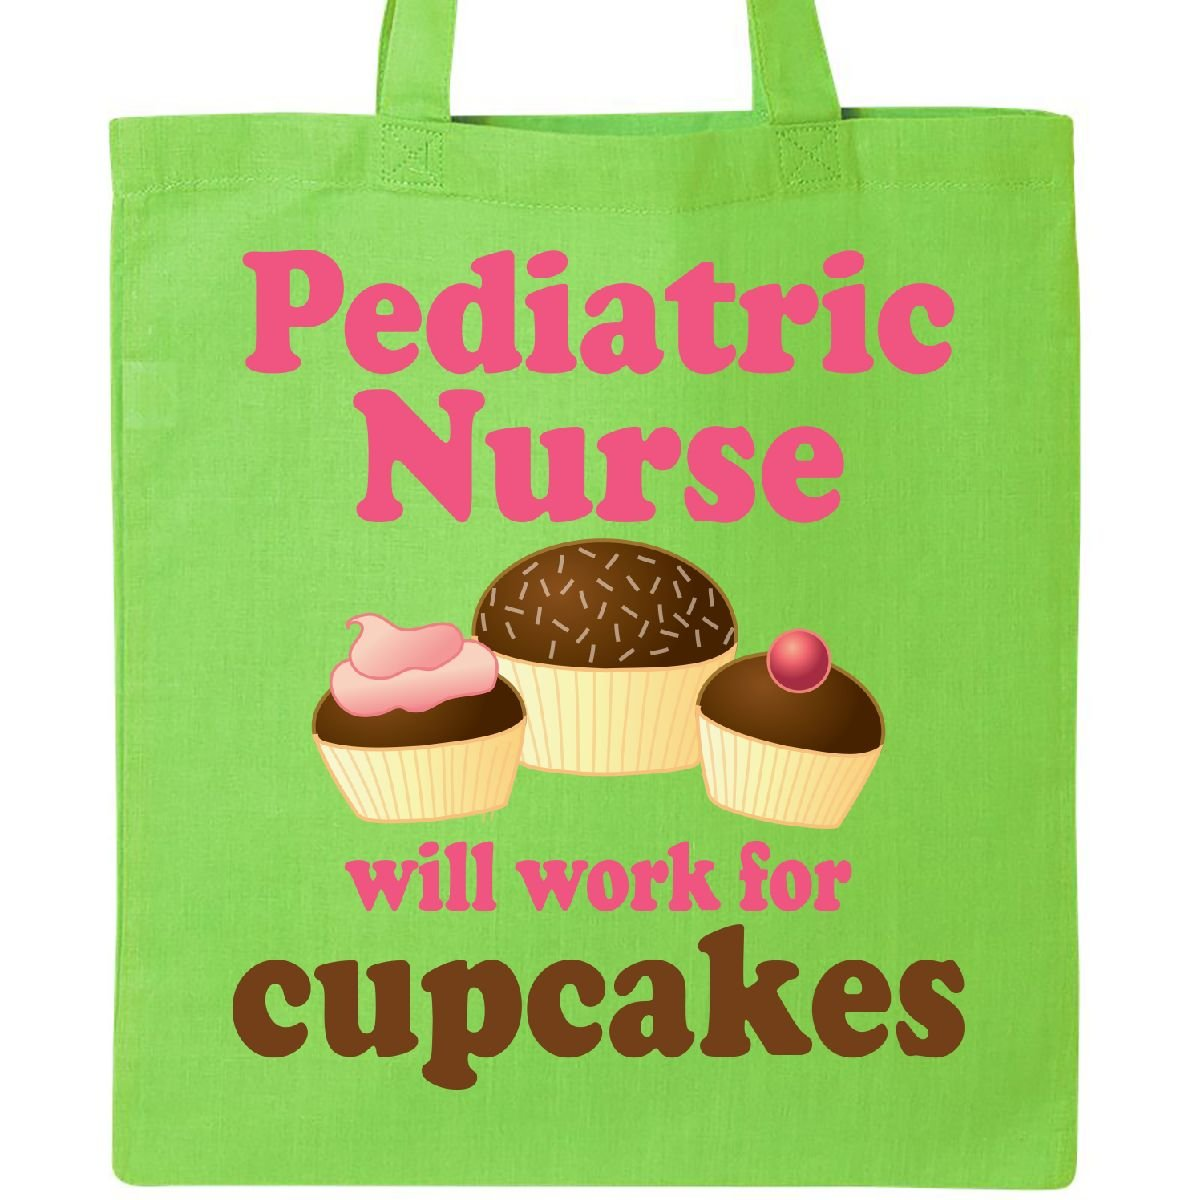 Inktastic – Pediatric Nurse Will Work For Cupcakes Toteバッグ One Size  ライムグリーン B07BB4VB7N